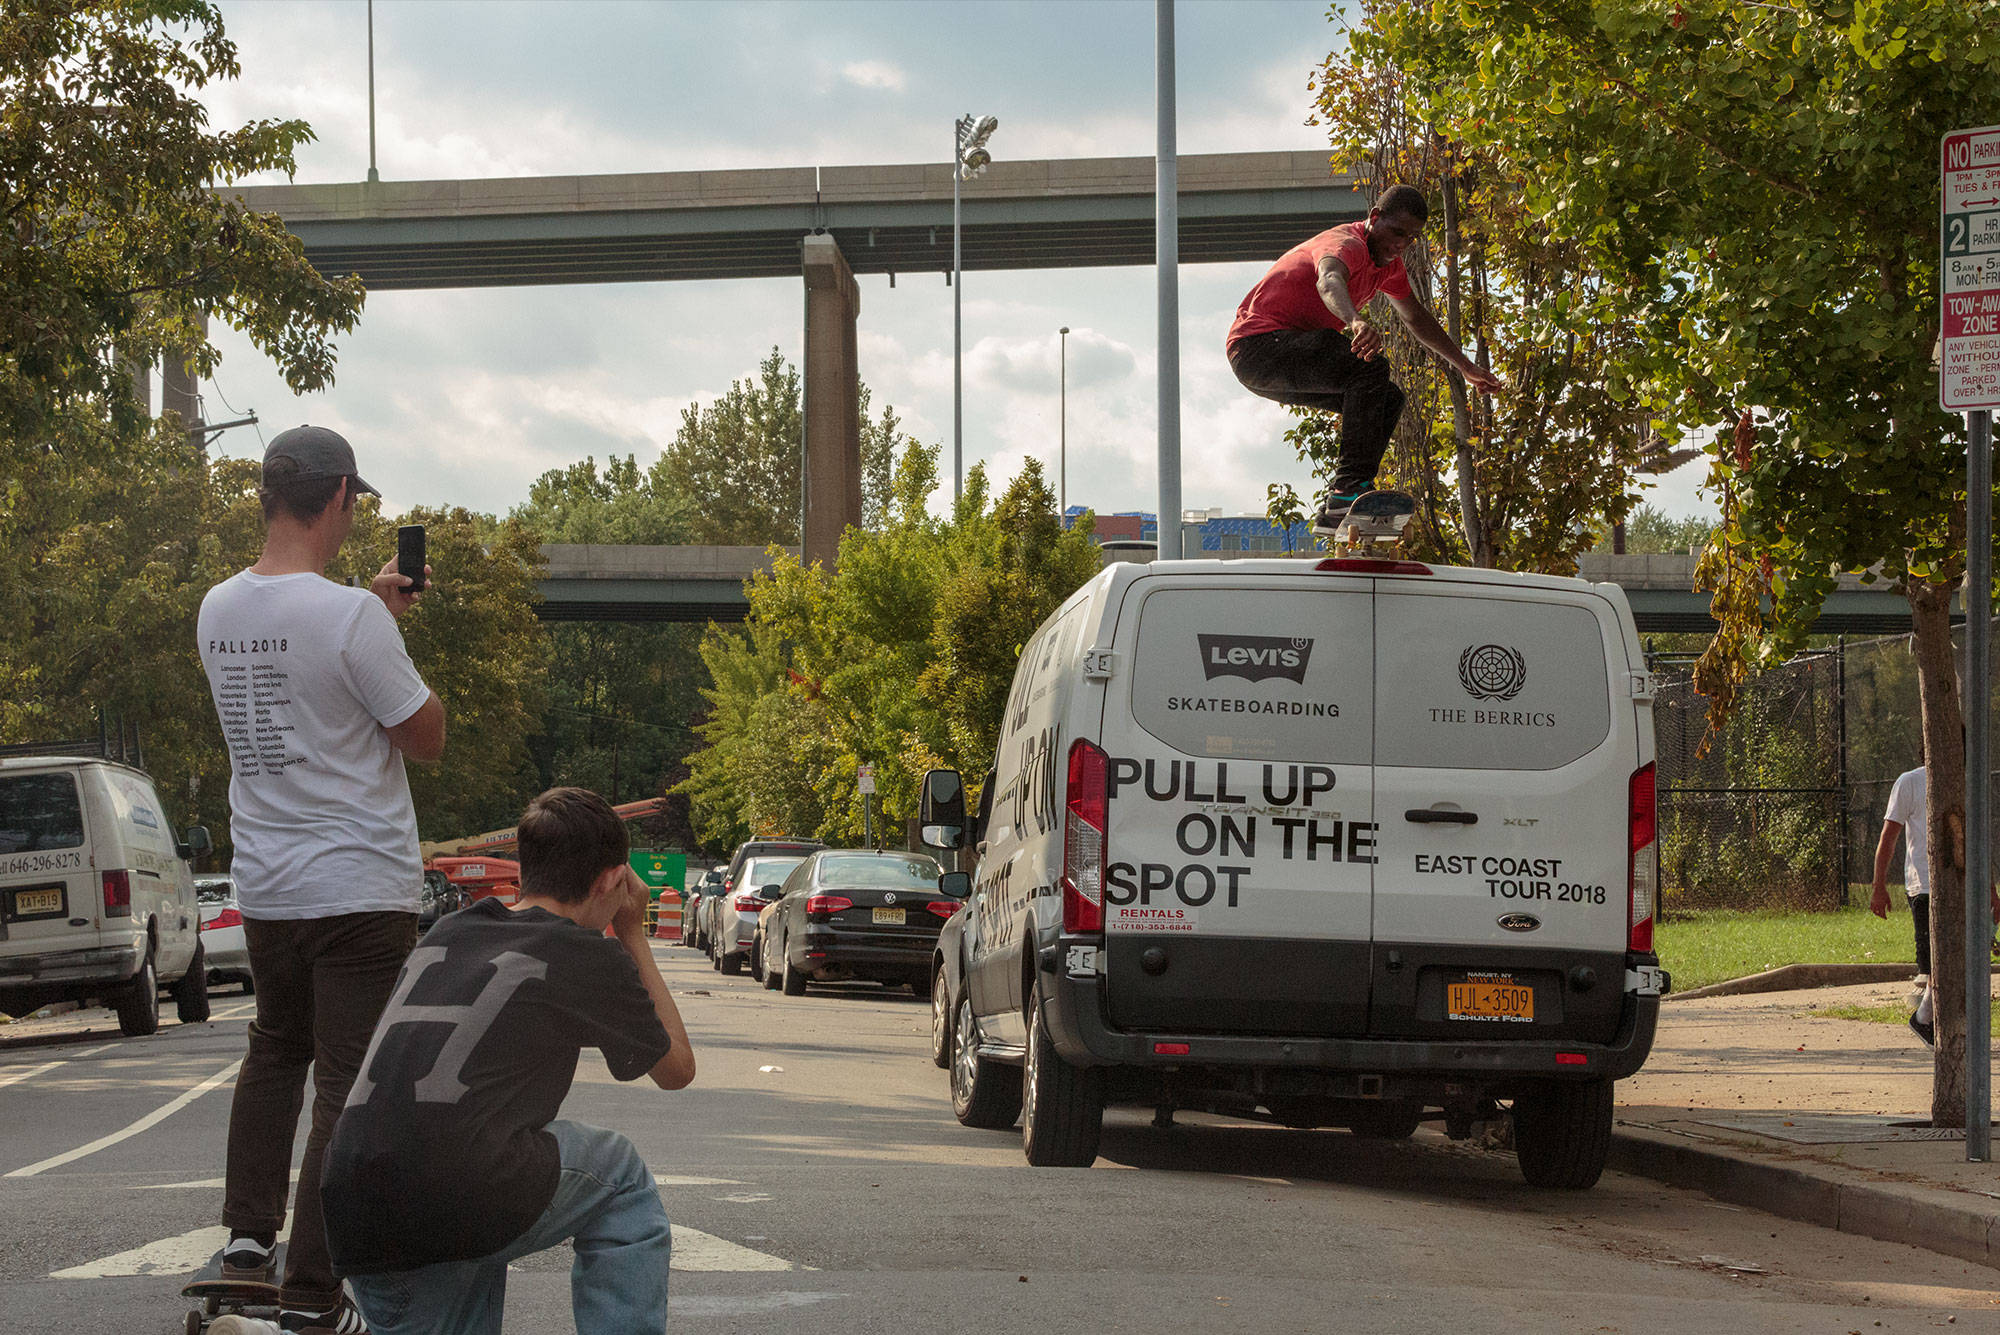 LEVI'S PULL UP ON THE SPOT TOUR STOP 1: NJ SKATESHOP